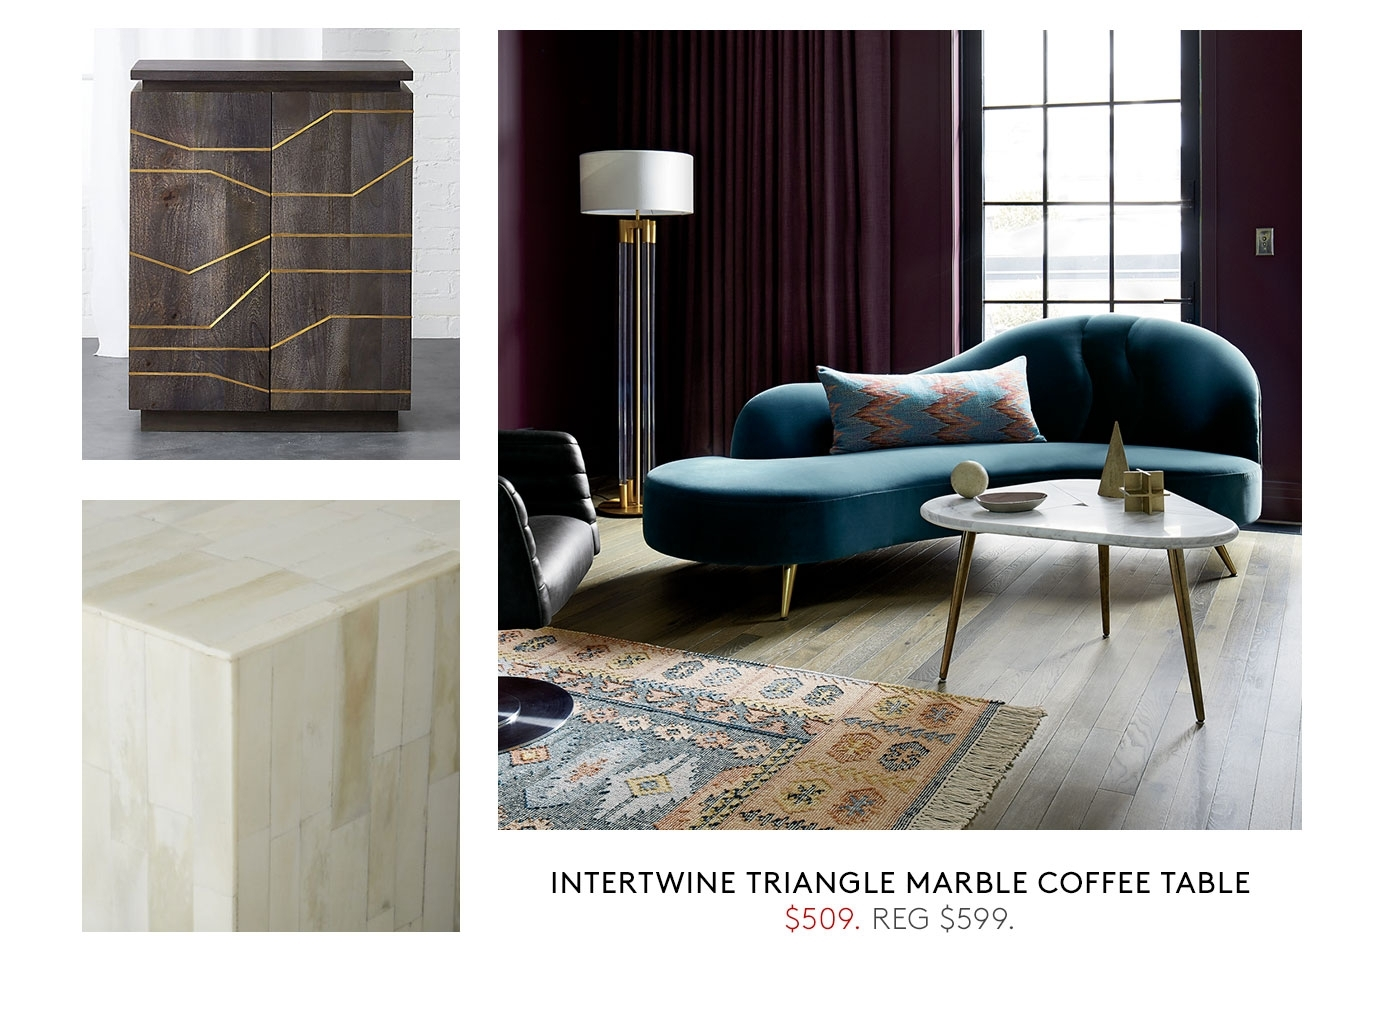 Cb2: Up To 20% Off Accent Table Sale Ends Today. | Milled regarding Intertwine Triangle Marble Coffee Tables (Image 9 of 30)